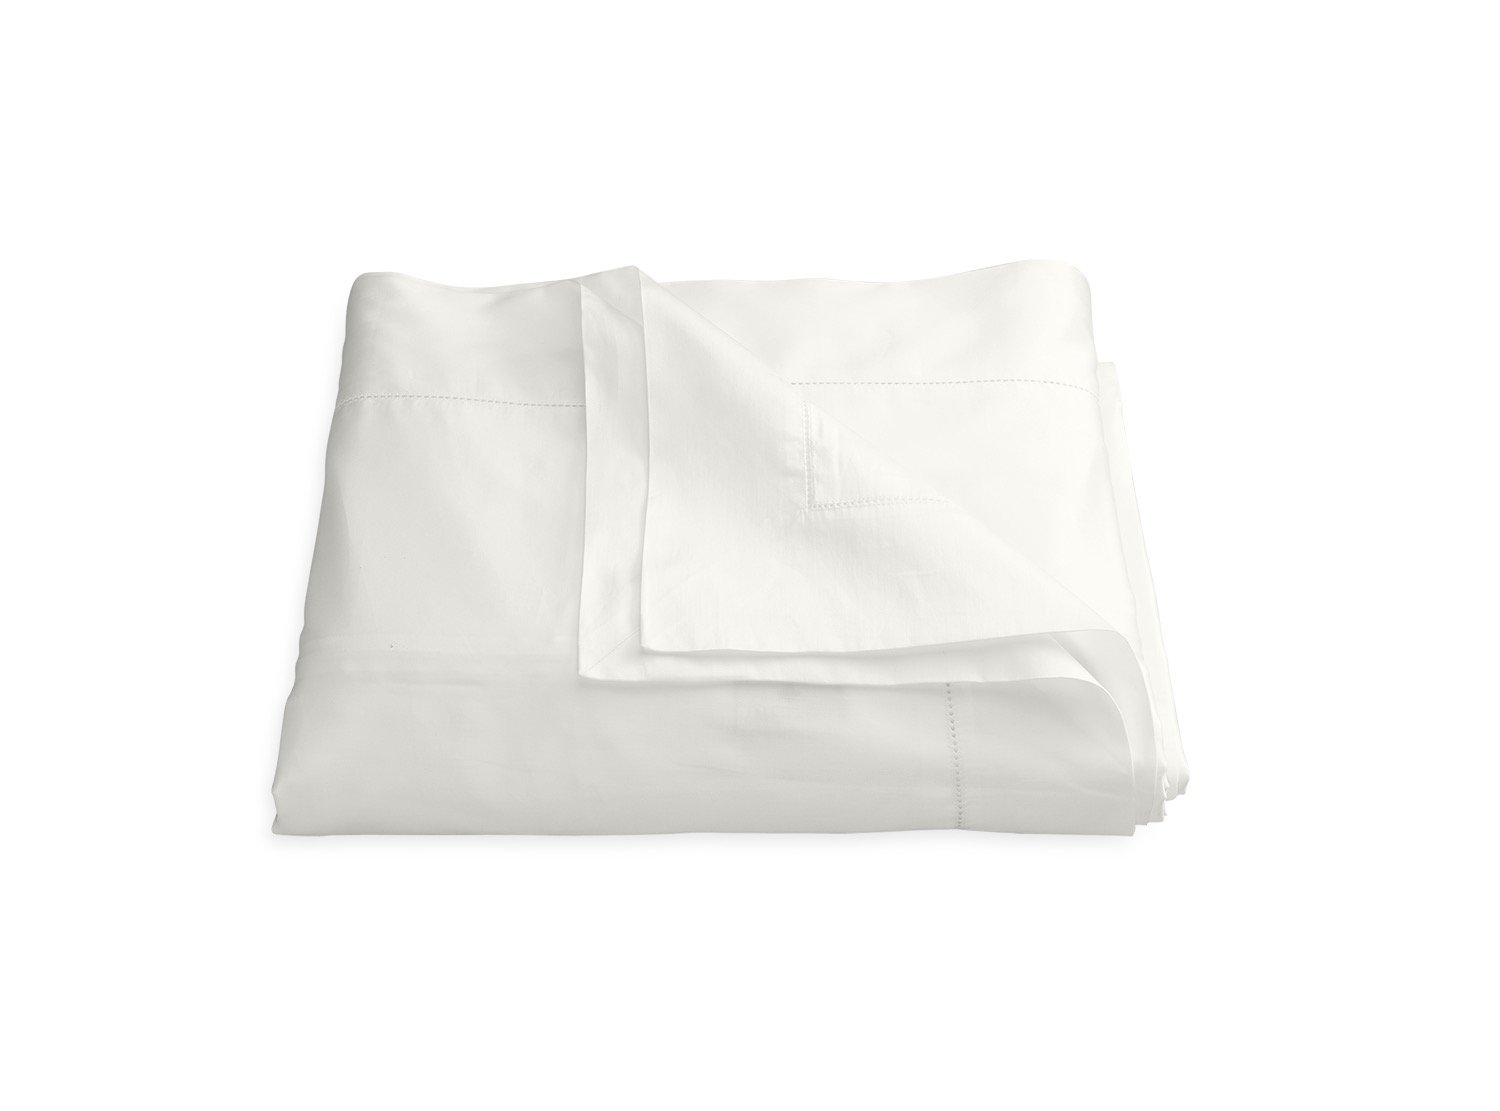 Nocturne Hemstitch Bone Duvet Cover | Matouk Sateen Bedding